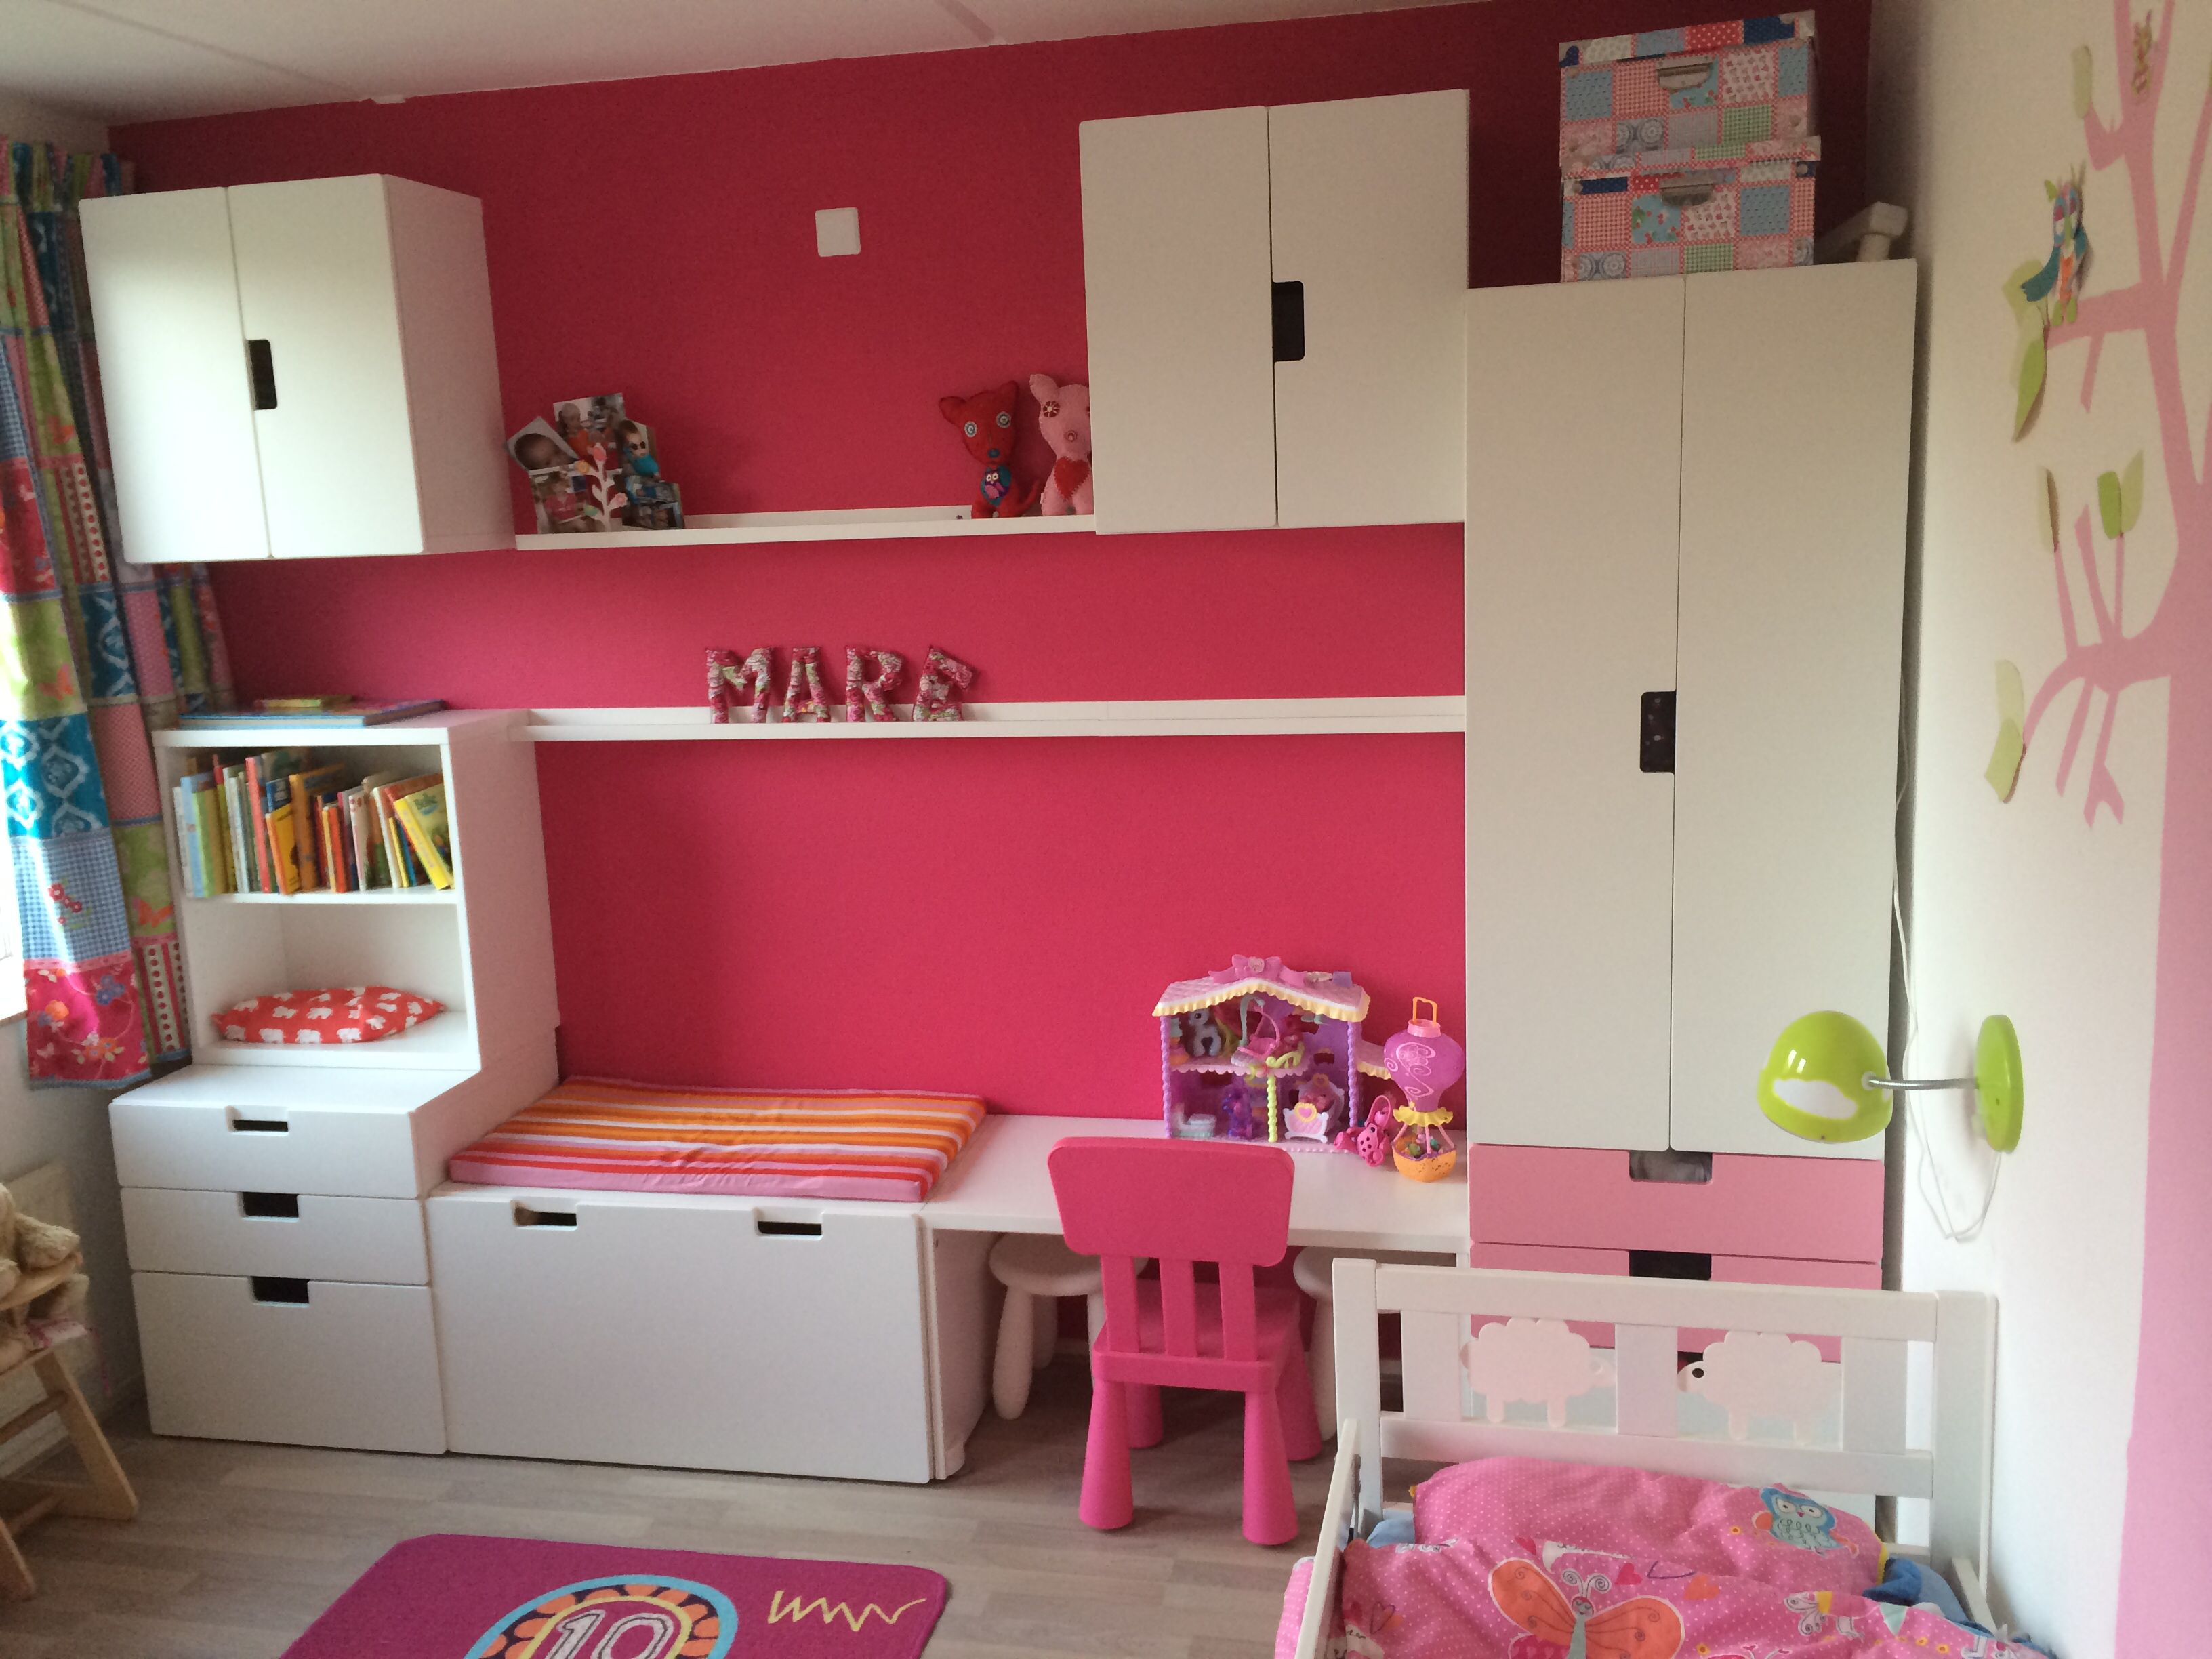 ... Stuva. I Love Ikea!! : Kinderkamer : Pinterest : Ikea, Met and I Love